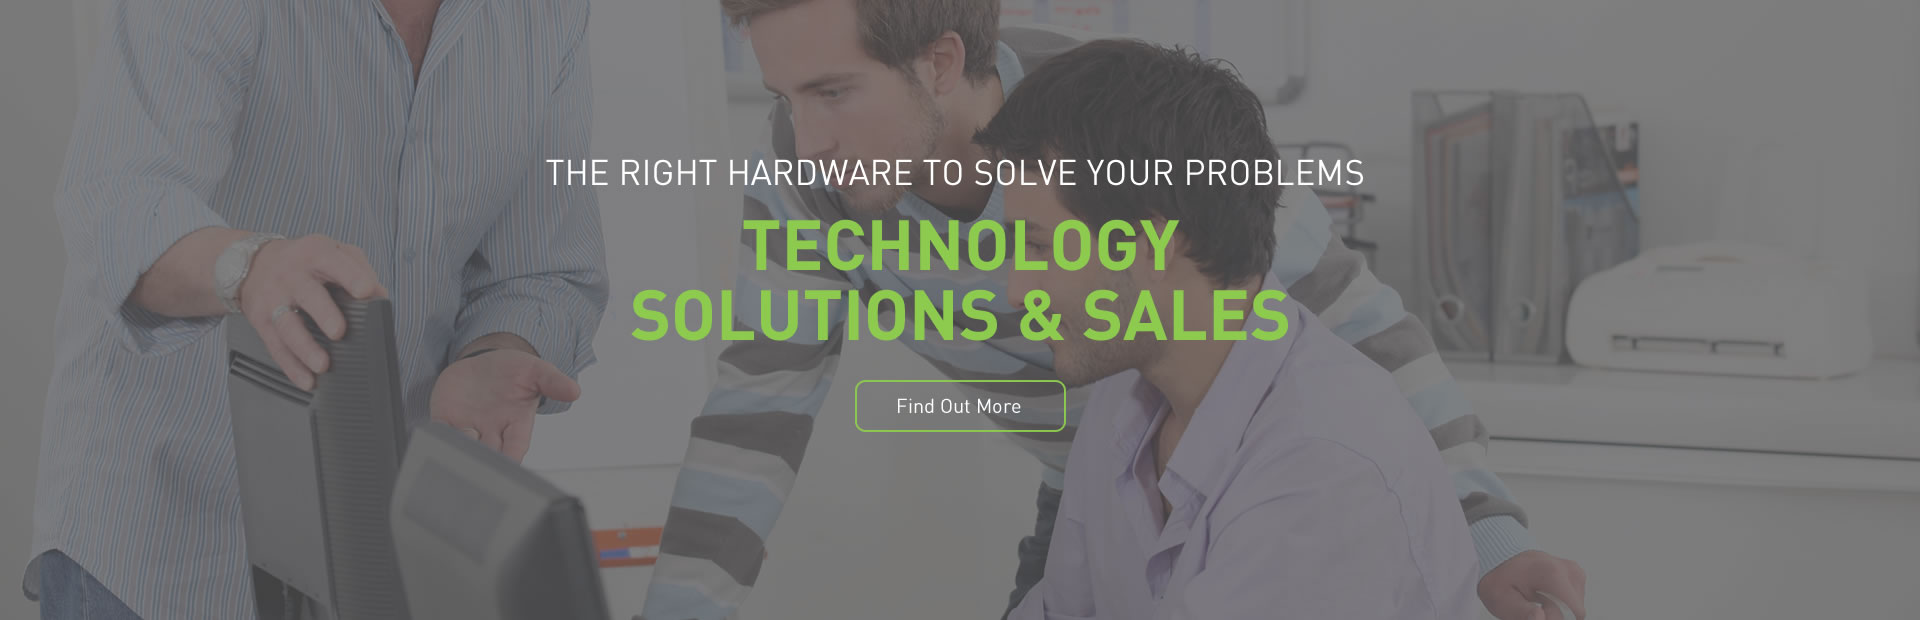 Technology solutions & sales